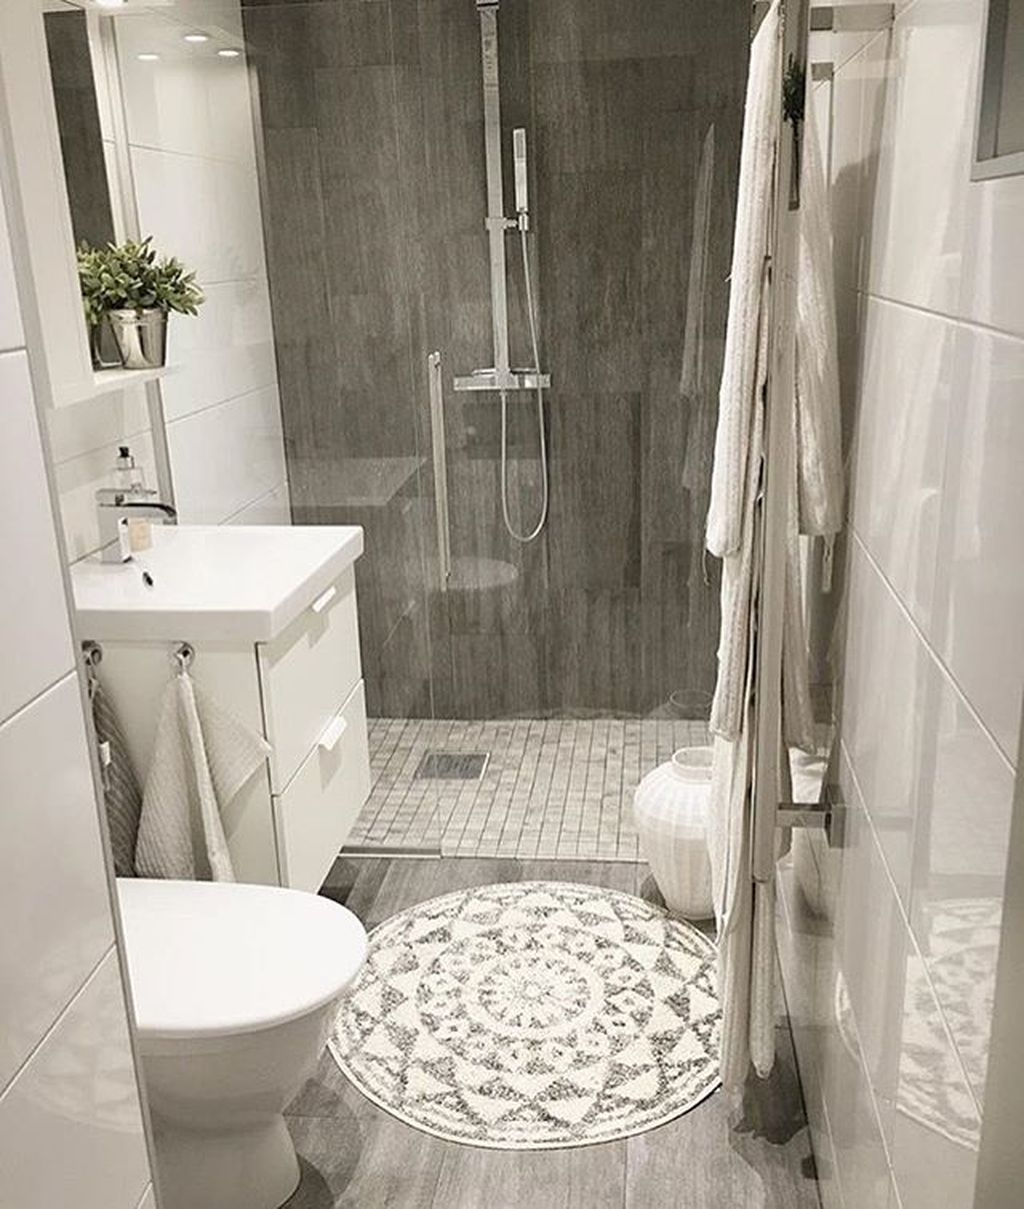 Bathroom Ideas: 39 Cool And Stylish Small Bathroom Design Ideas